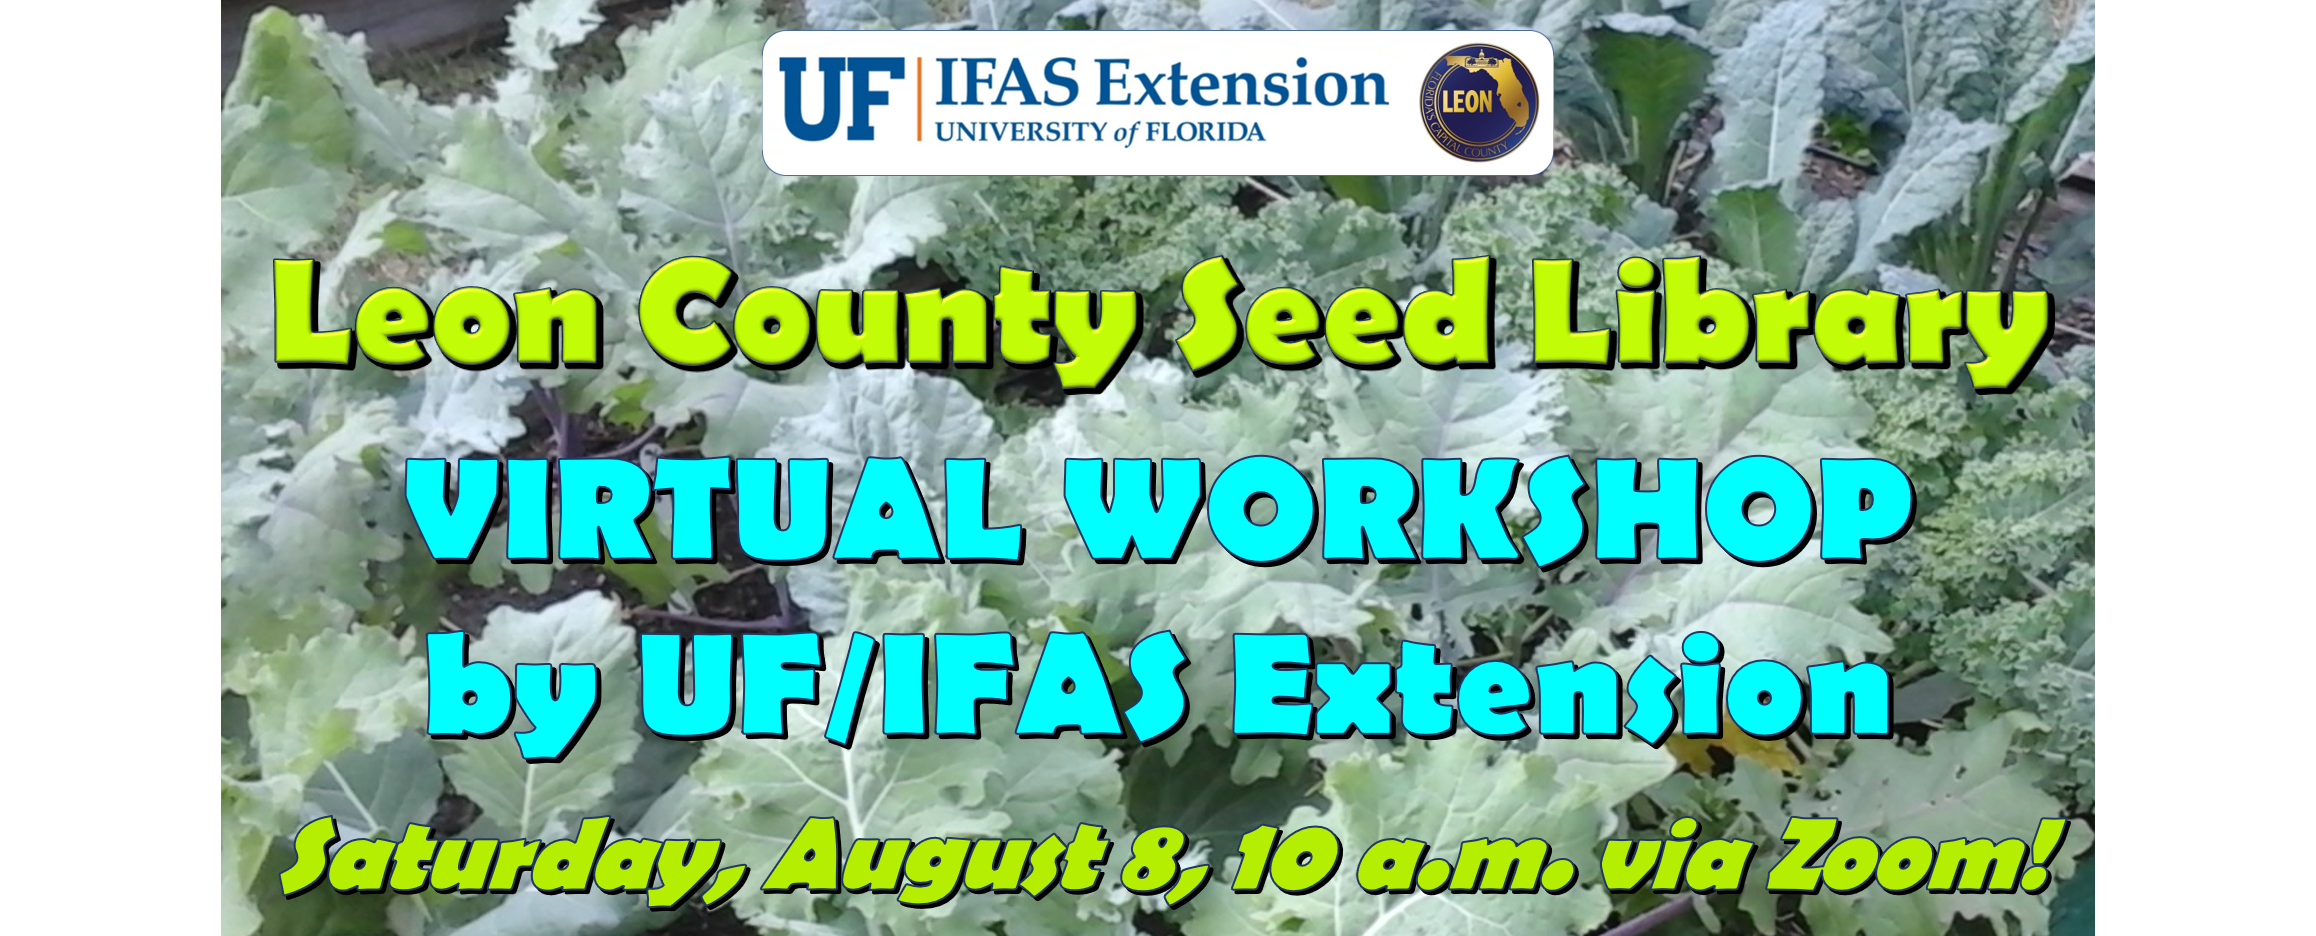 Join us via Zoom on Saturday, August 8, for our Leon County Seed Library Virtual Workshop. Graphic by Molly Jameson.